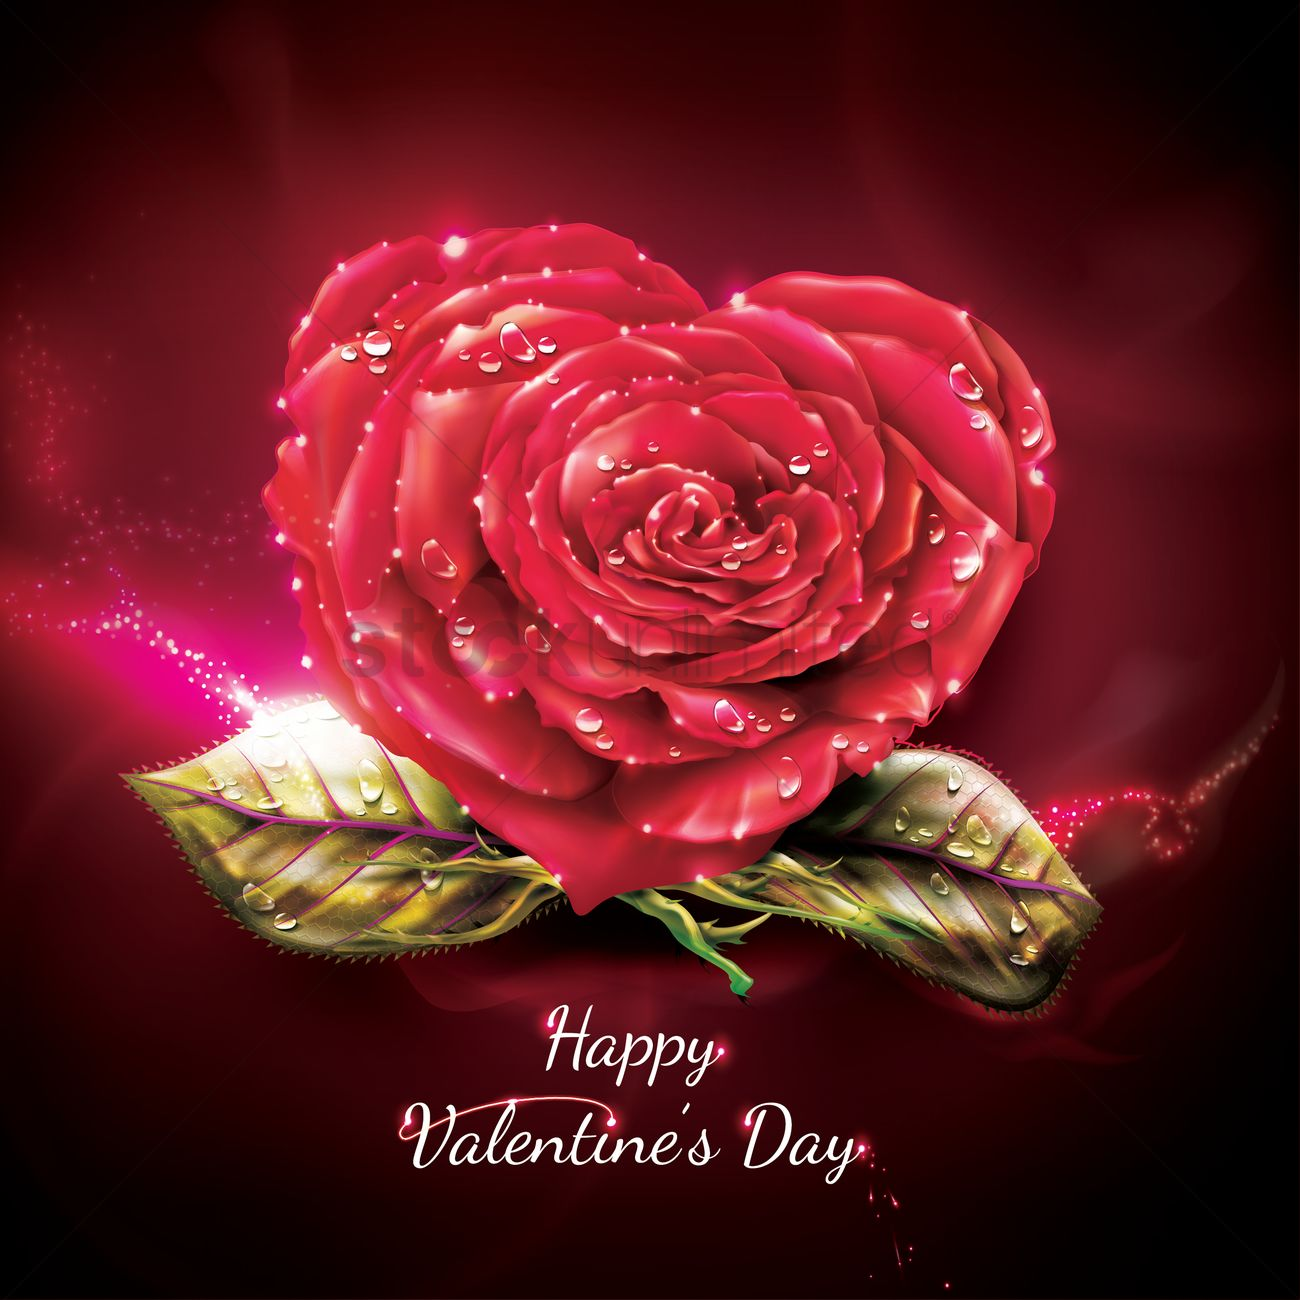 Happy Valentines Day Greeting Vector Image 1974896 Stockunlimited